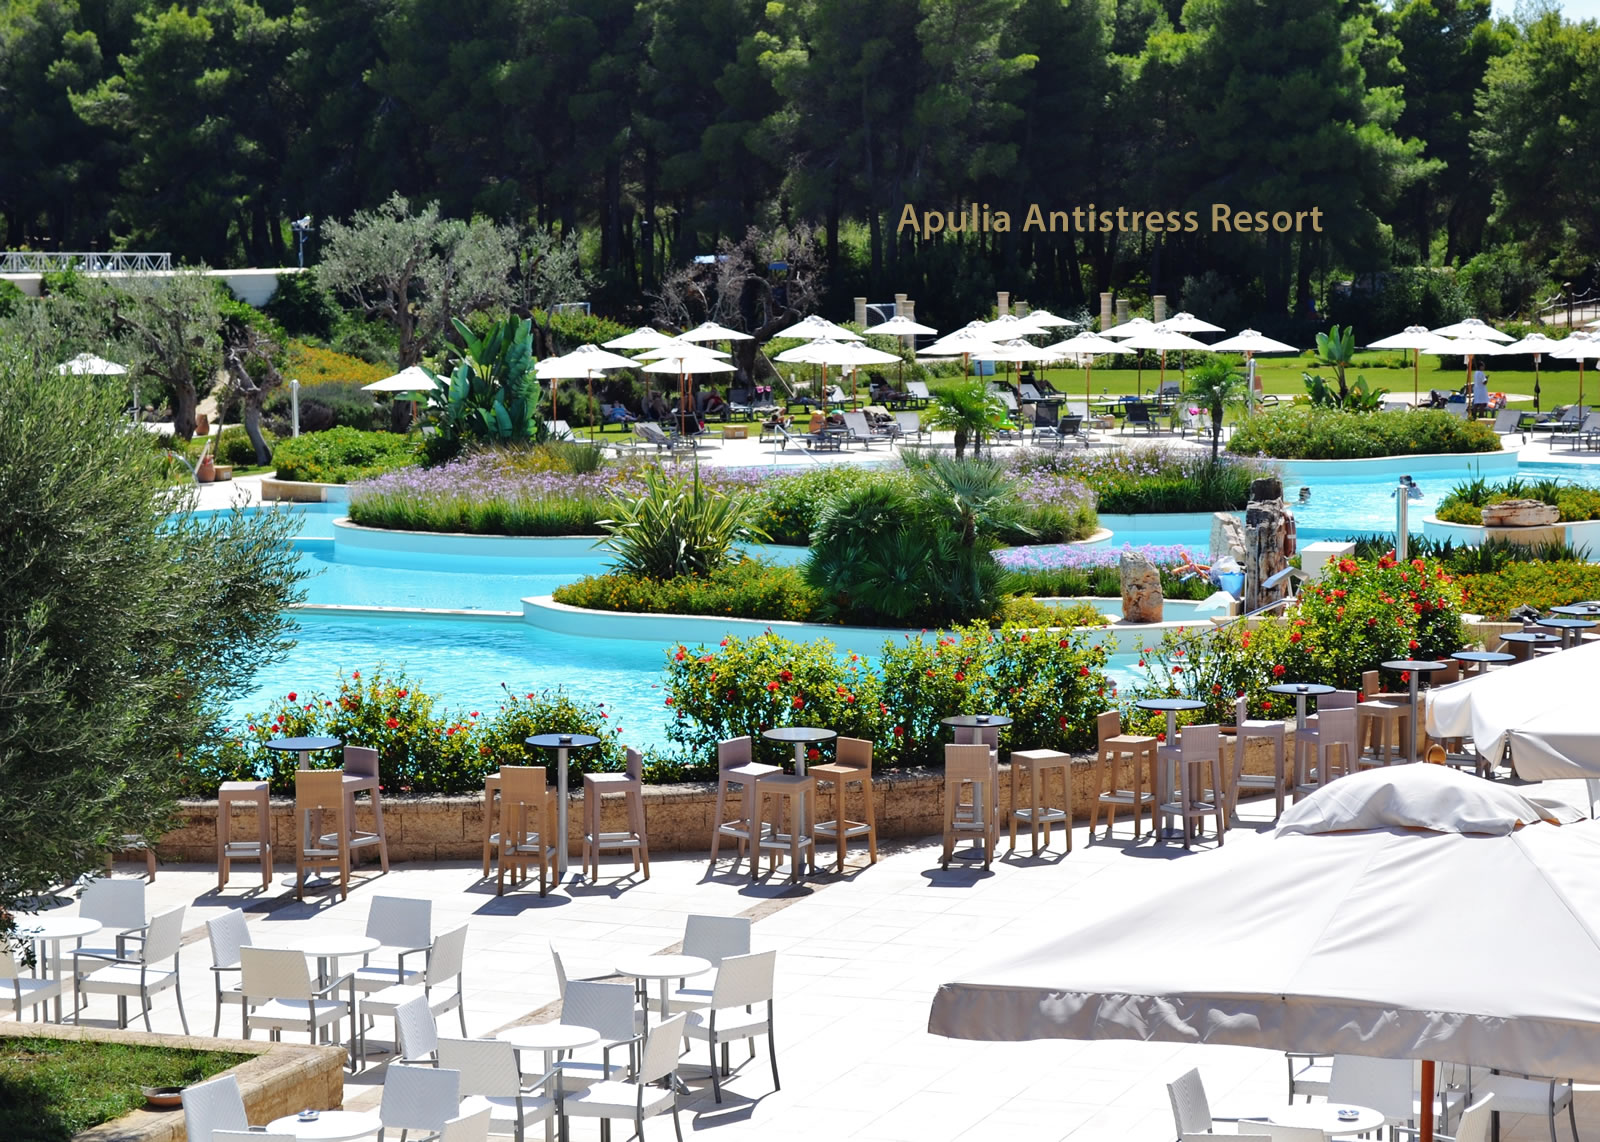 iberotel apuliaa antistress resort